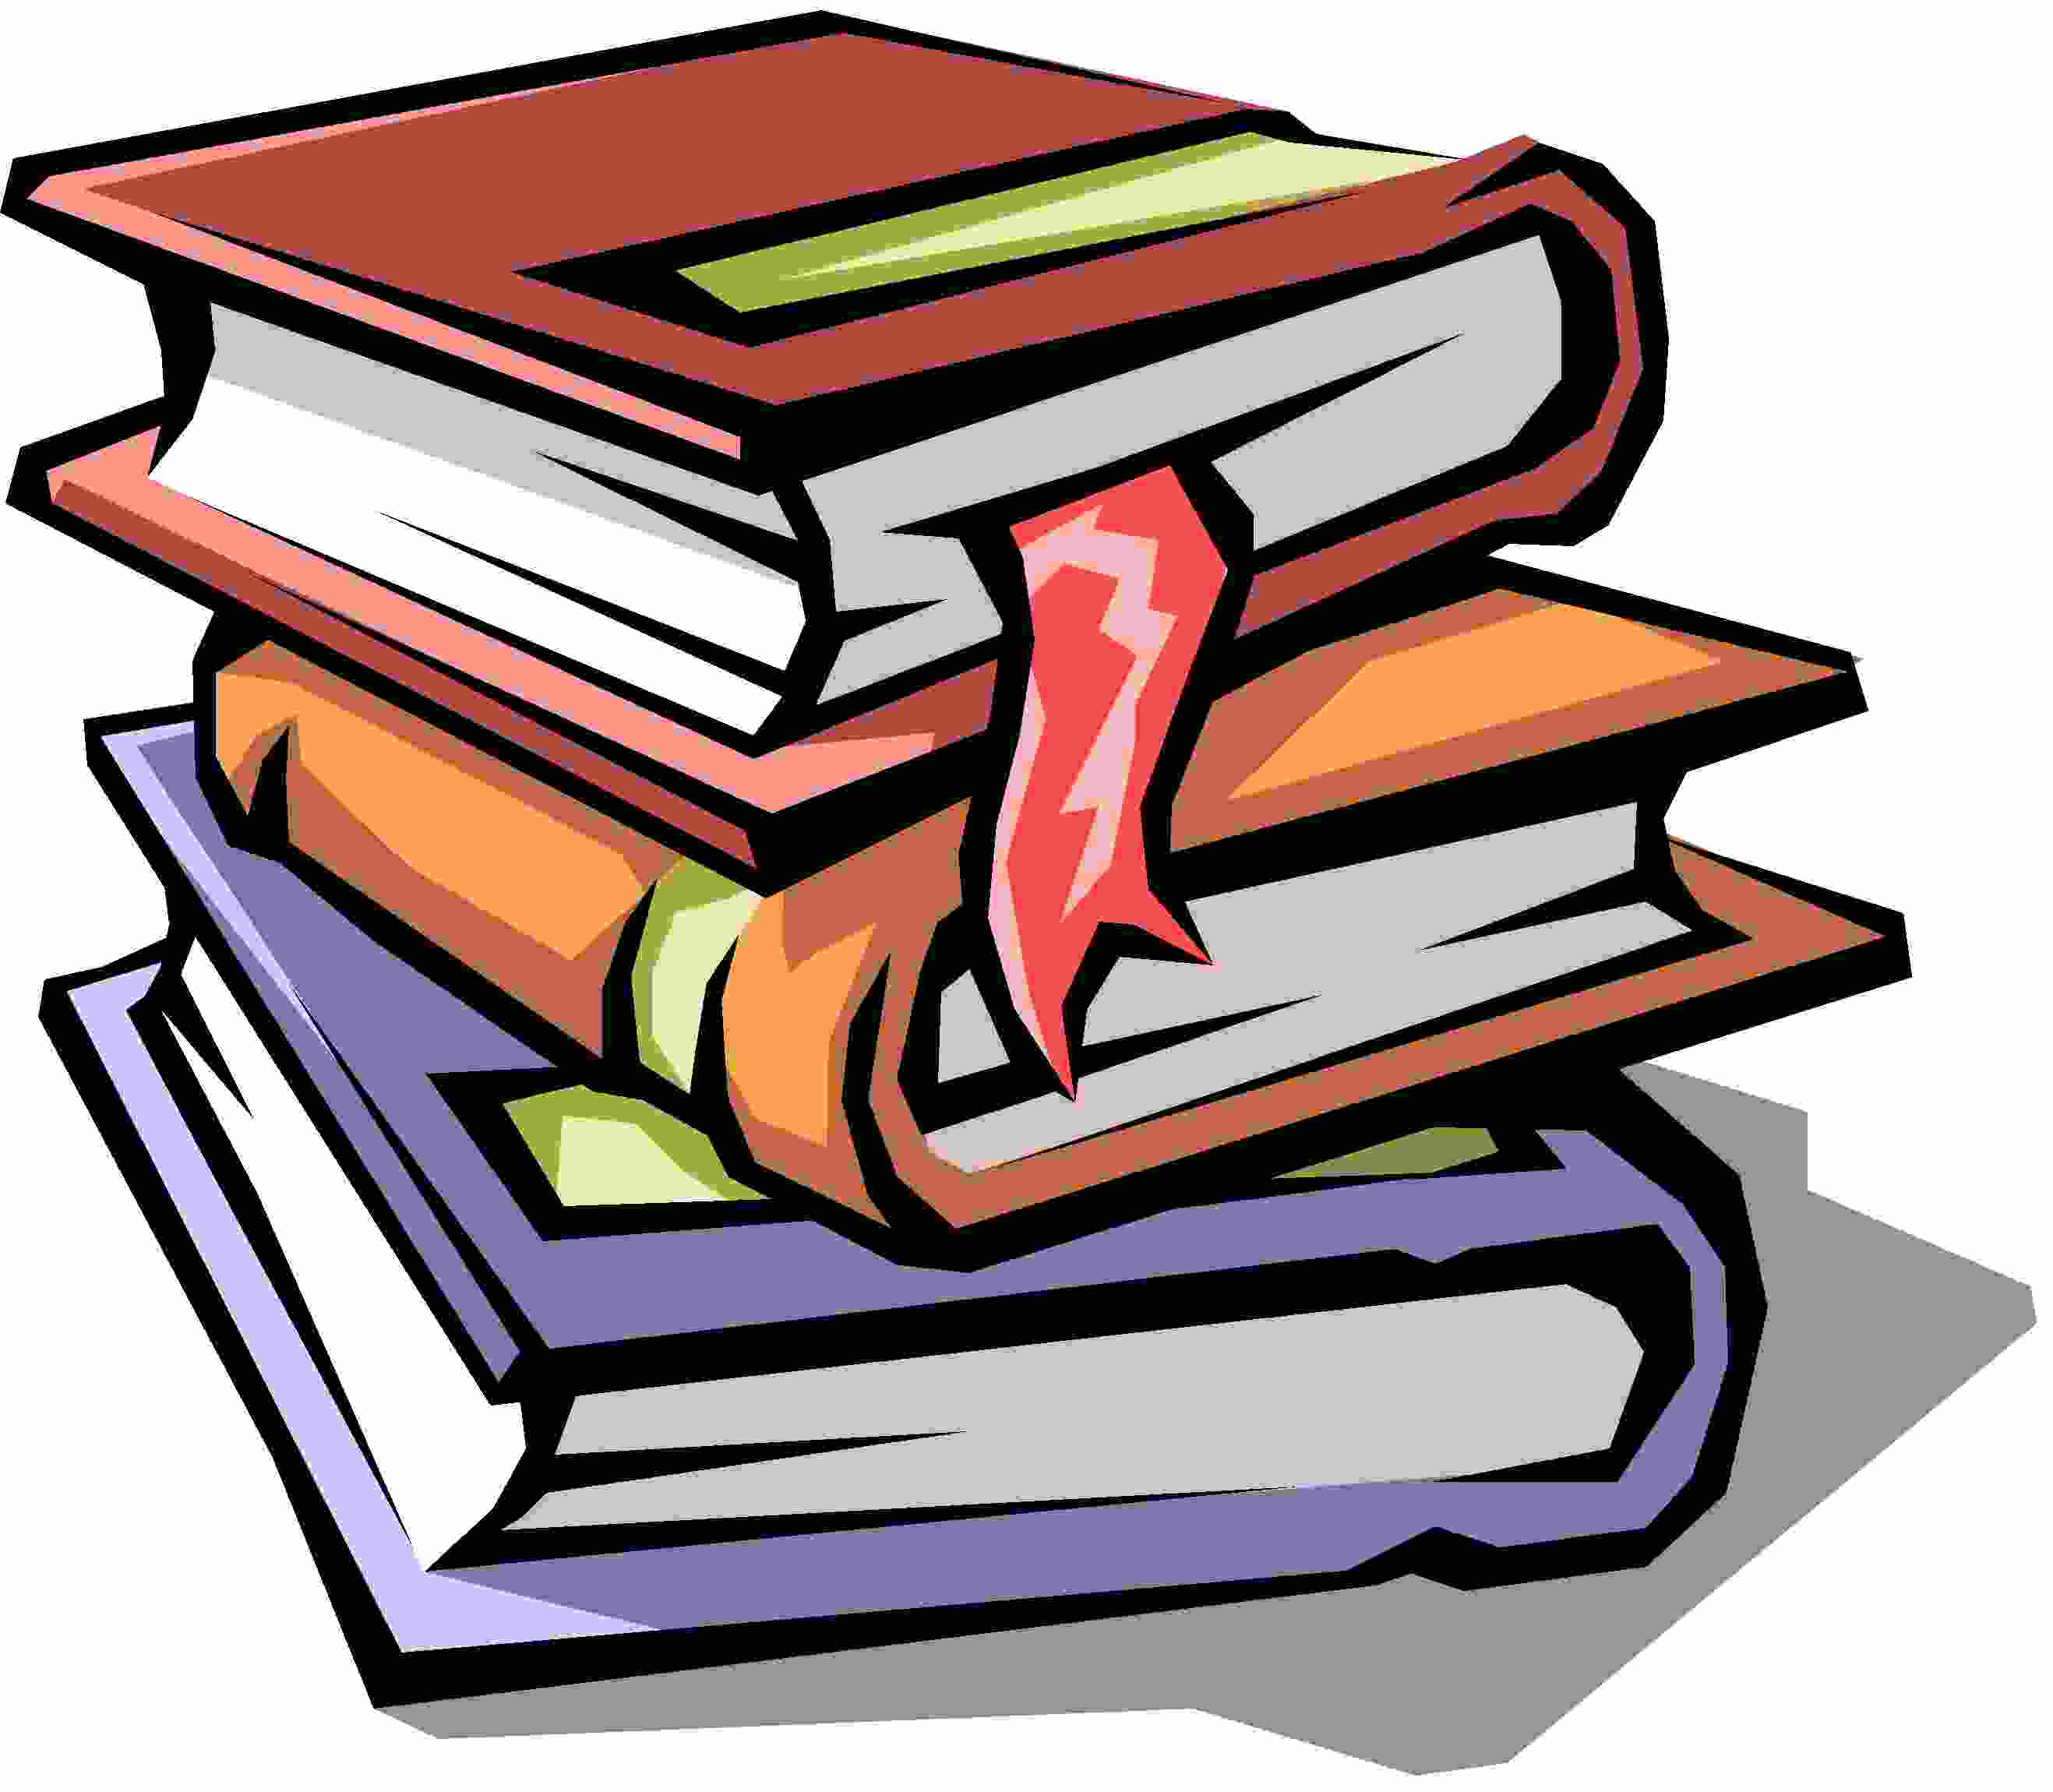 Free Office Books Cliparts, Download Free Clip Art, Free Clip Art on.